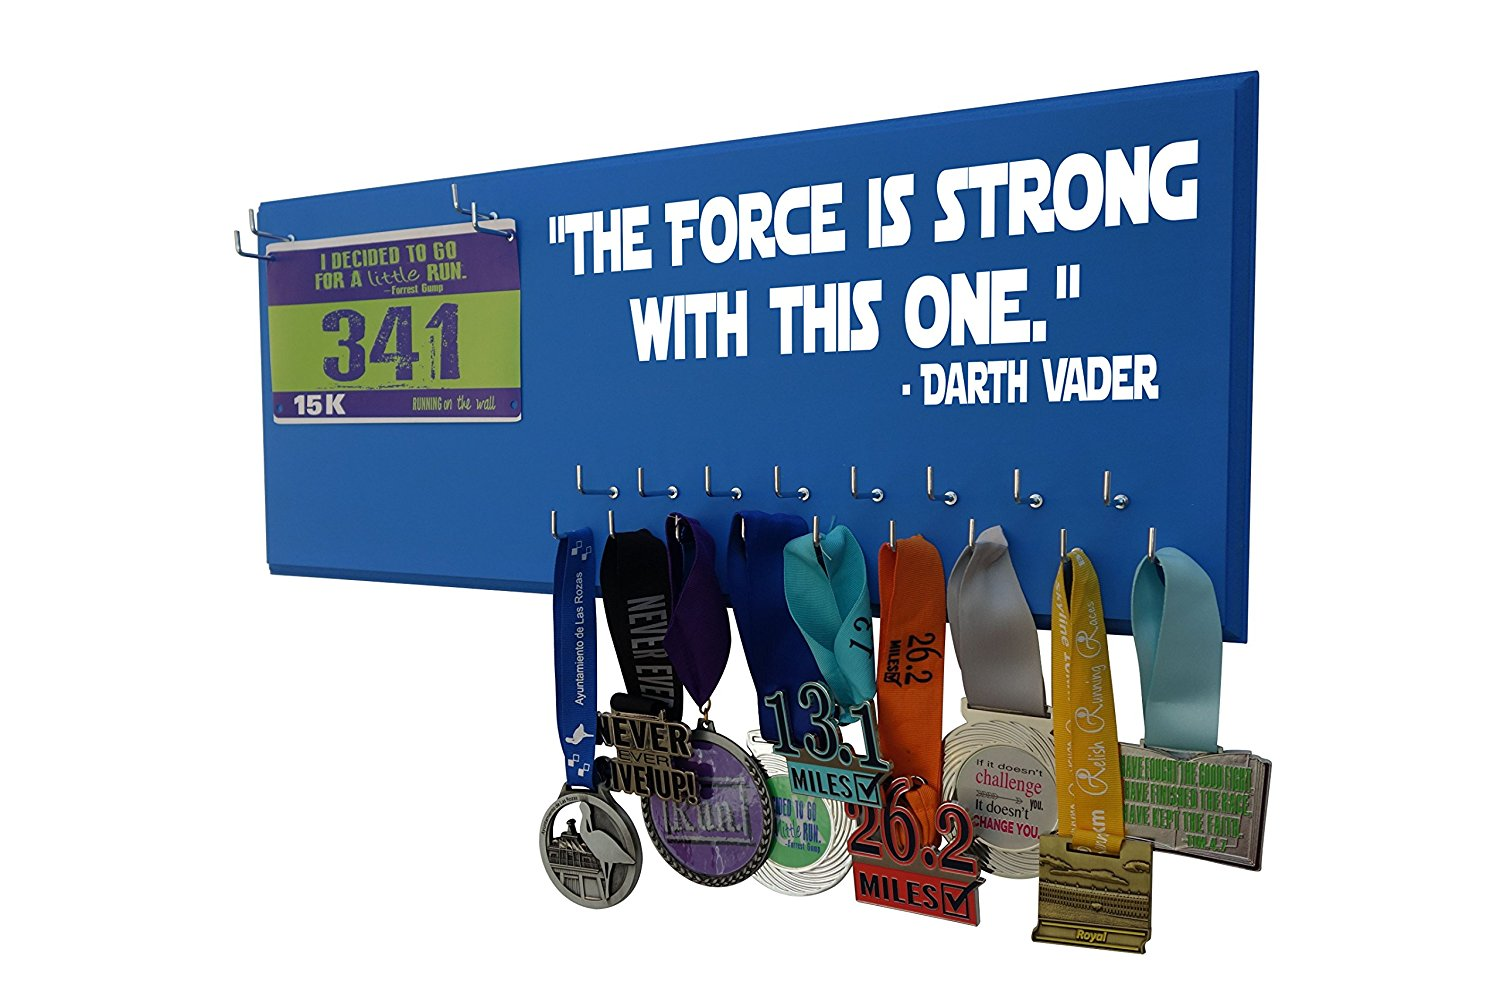 "Running on the Wall - Star wars medal hanger, Star wars medal hangers for runners, medal holder, Disney medal holders Darth Vader; running medal hanger ""THE FORCE IS STRONG WITH THIS ONE"""